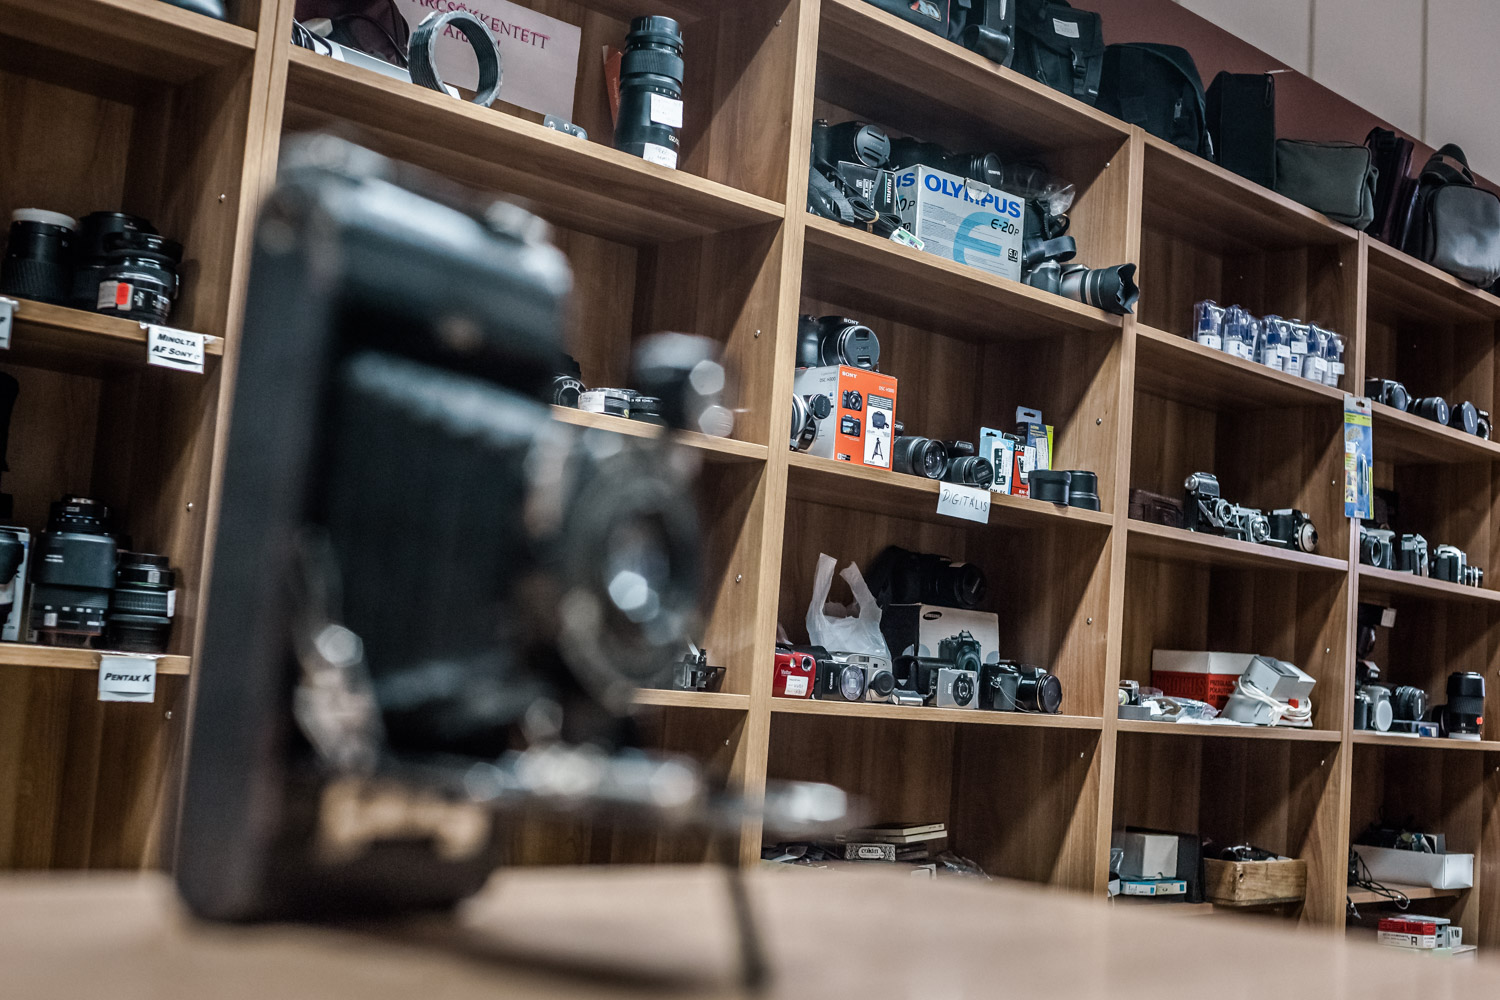 Ultimate guide to Budapest's best camera shops and photo services | WeLoveBudapest EN